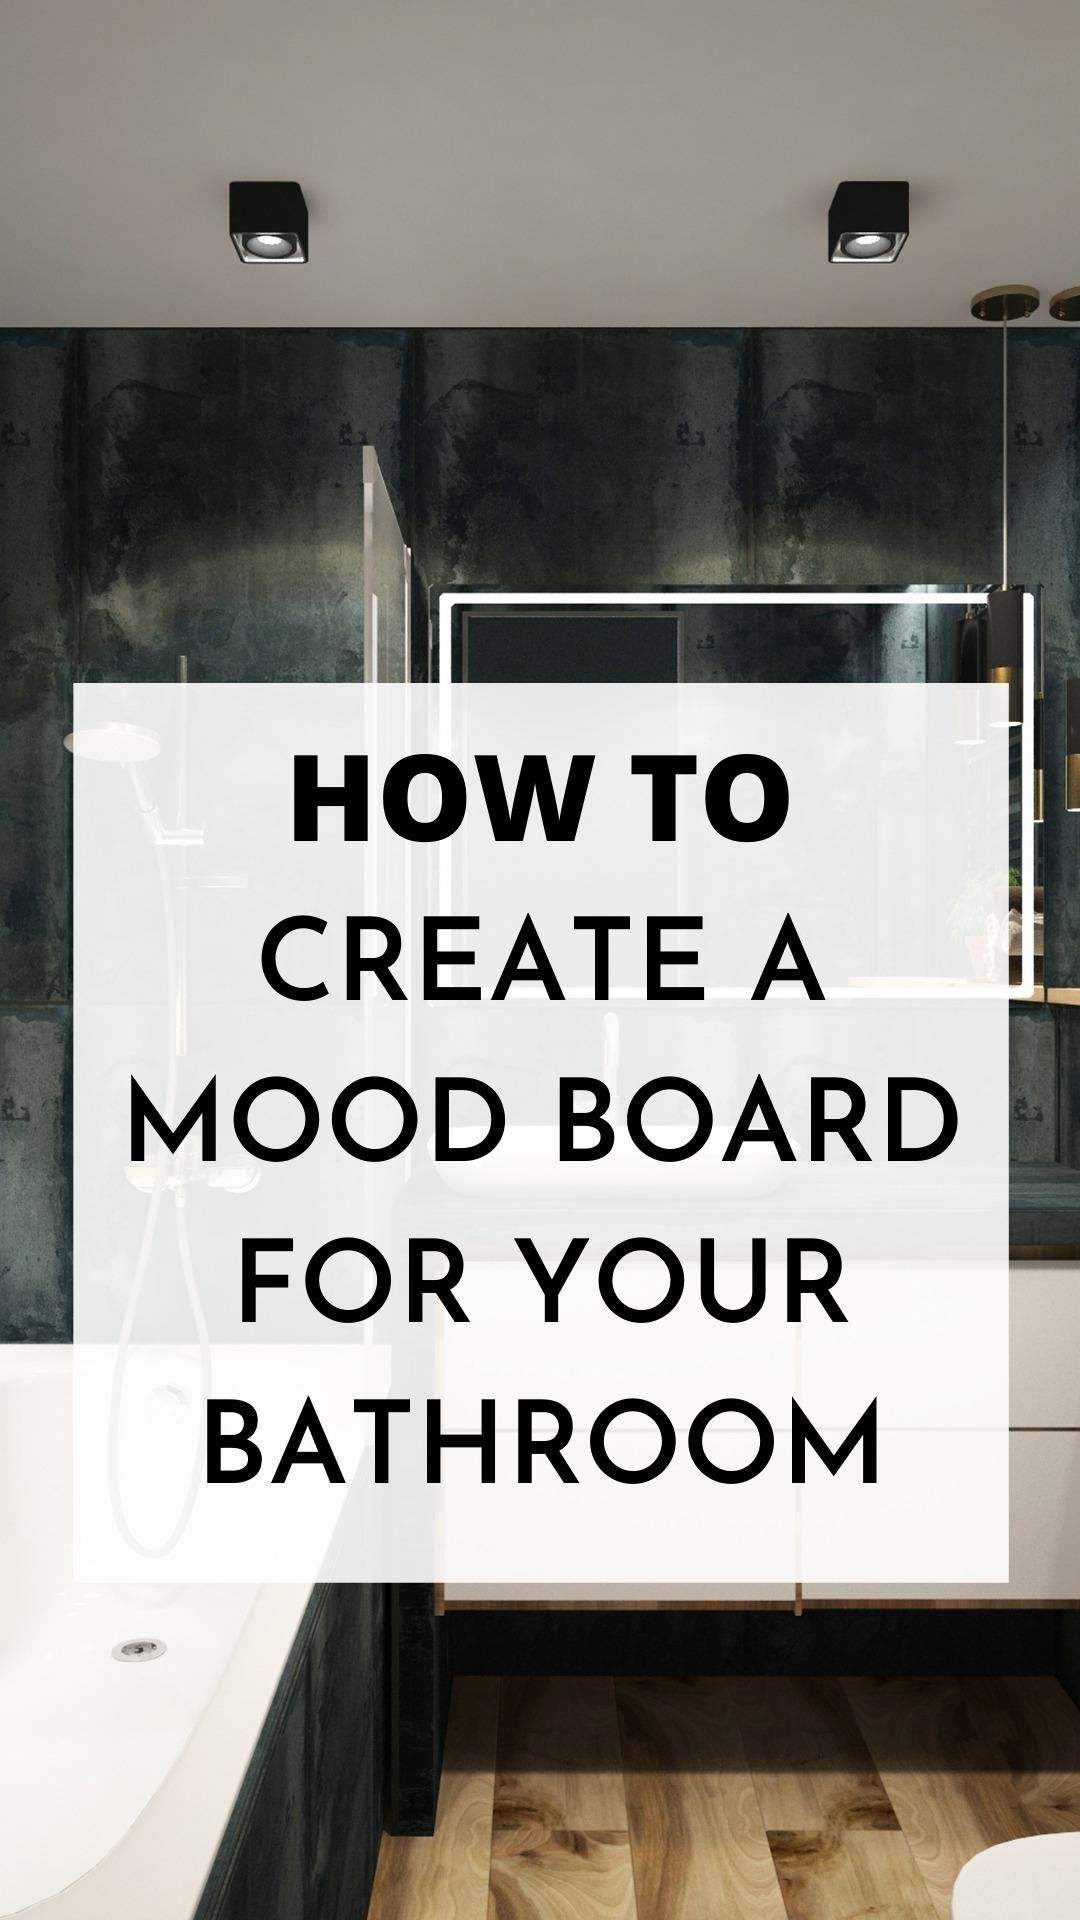 Photo of How to create a mood board for your bathroom